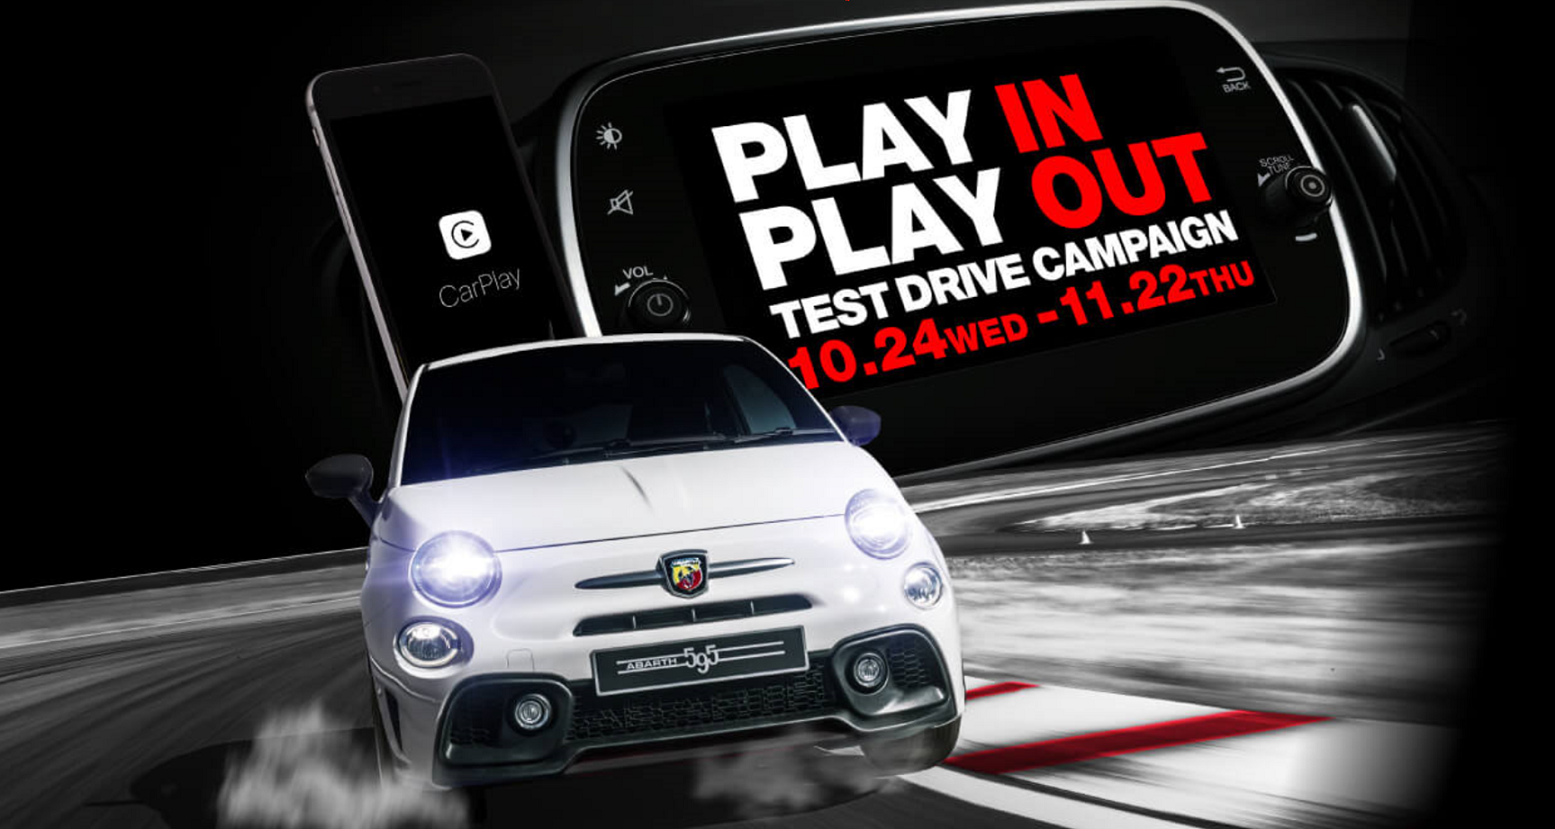 PLAY IN PLAY OUT TEST DRIVE CAMPAIGN